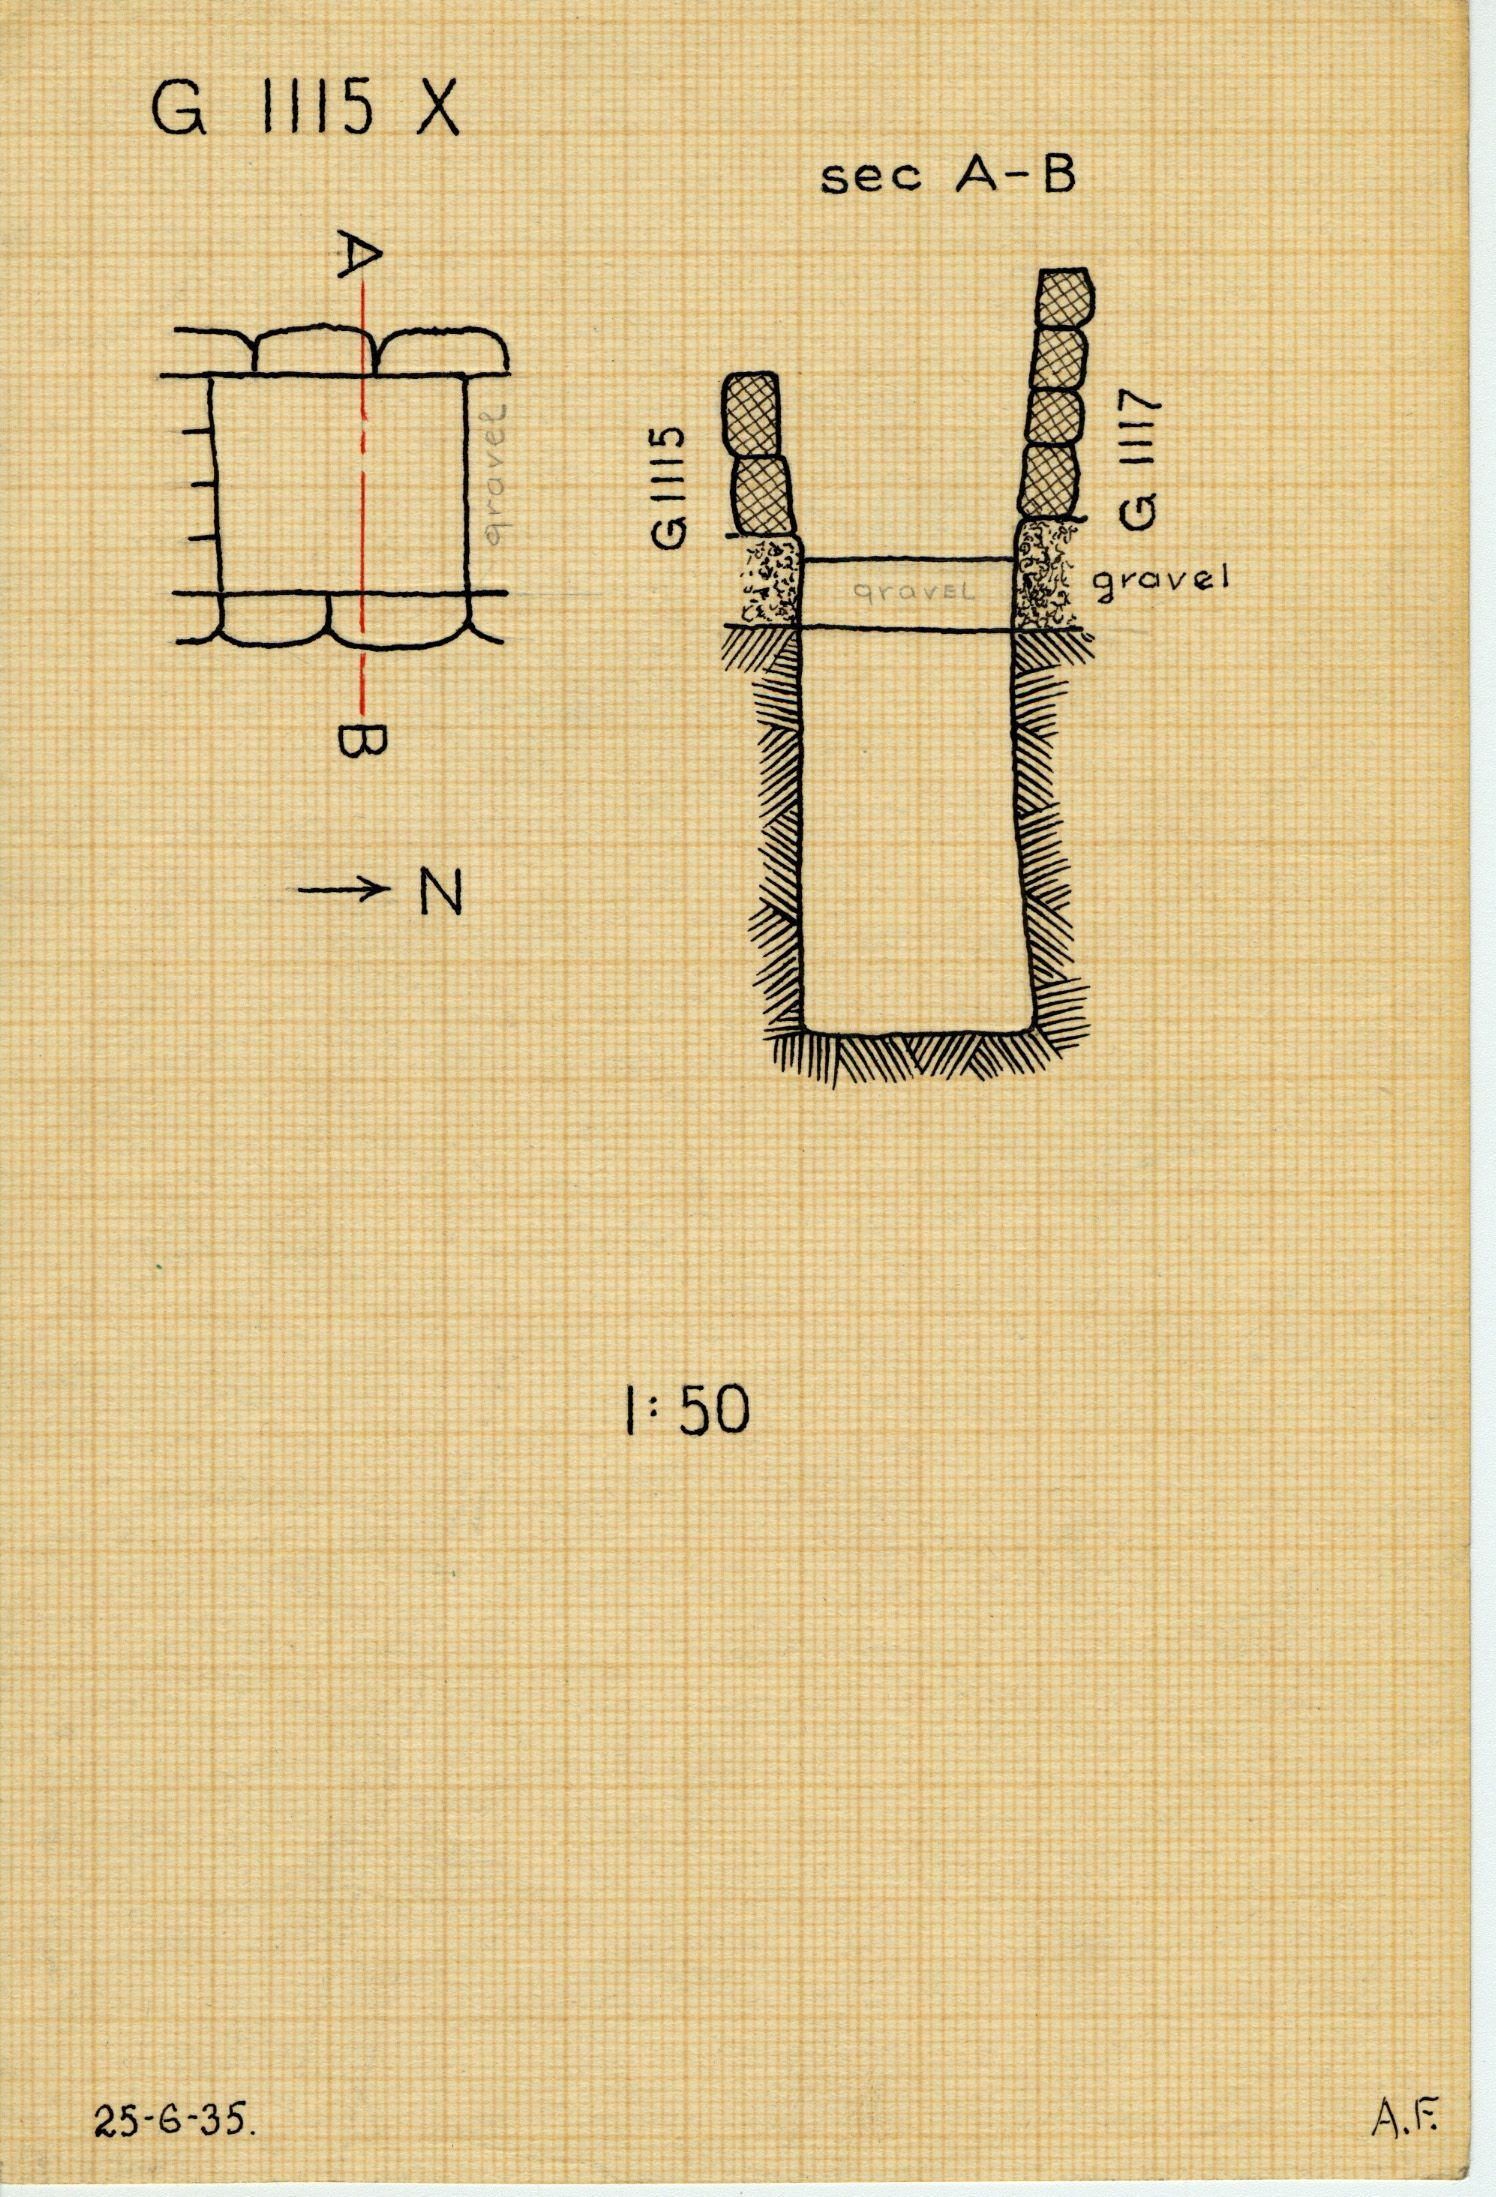 Maps and plans: G 1115, Shaft X